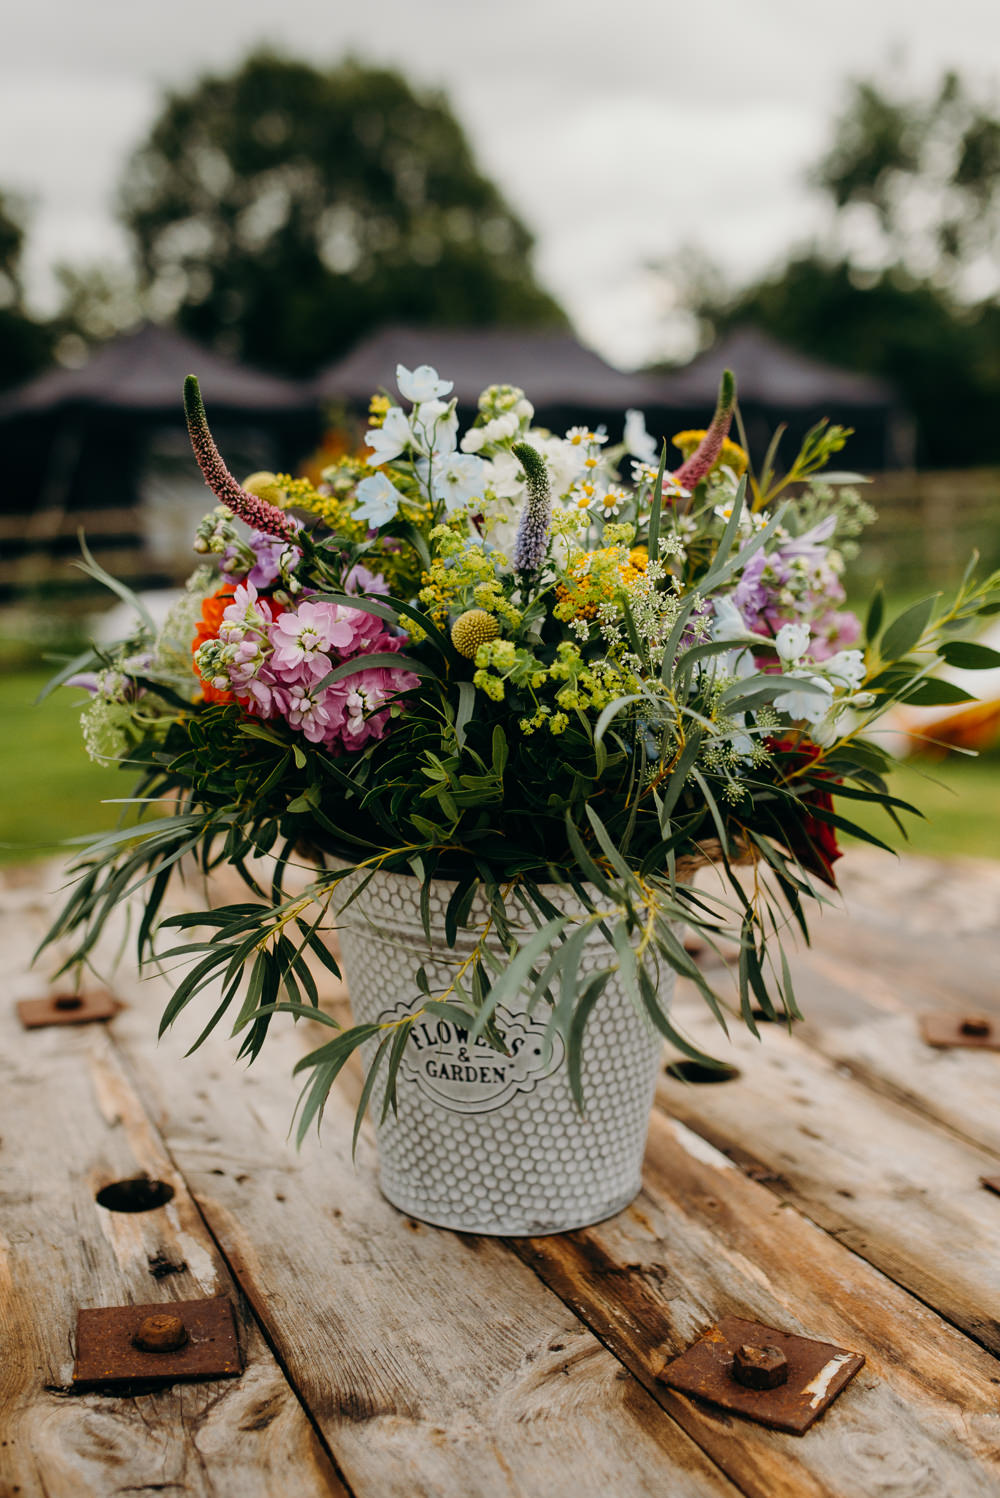 Wild Meadow Flowers Wildflowers Colourful Stretch Tent Wedding Peter Mackey Photography